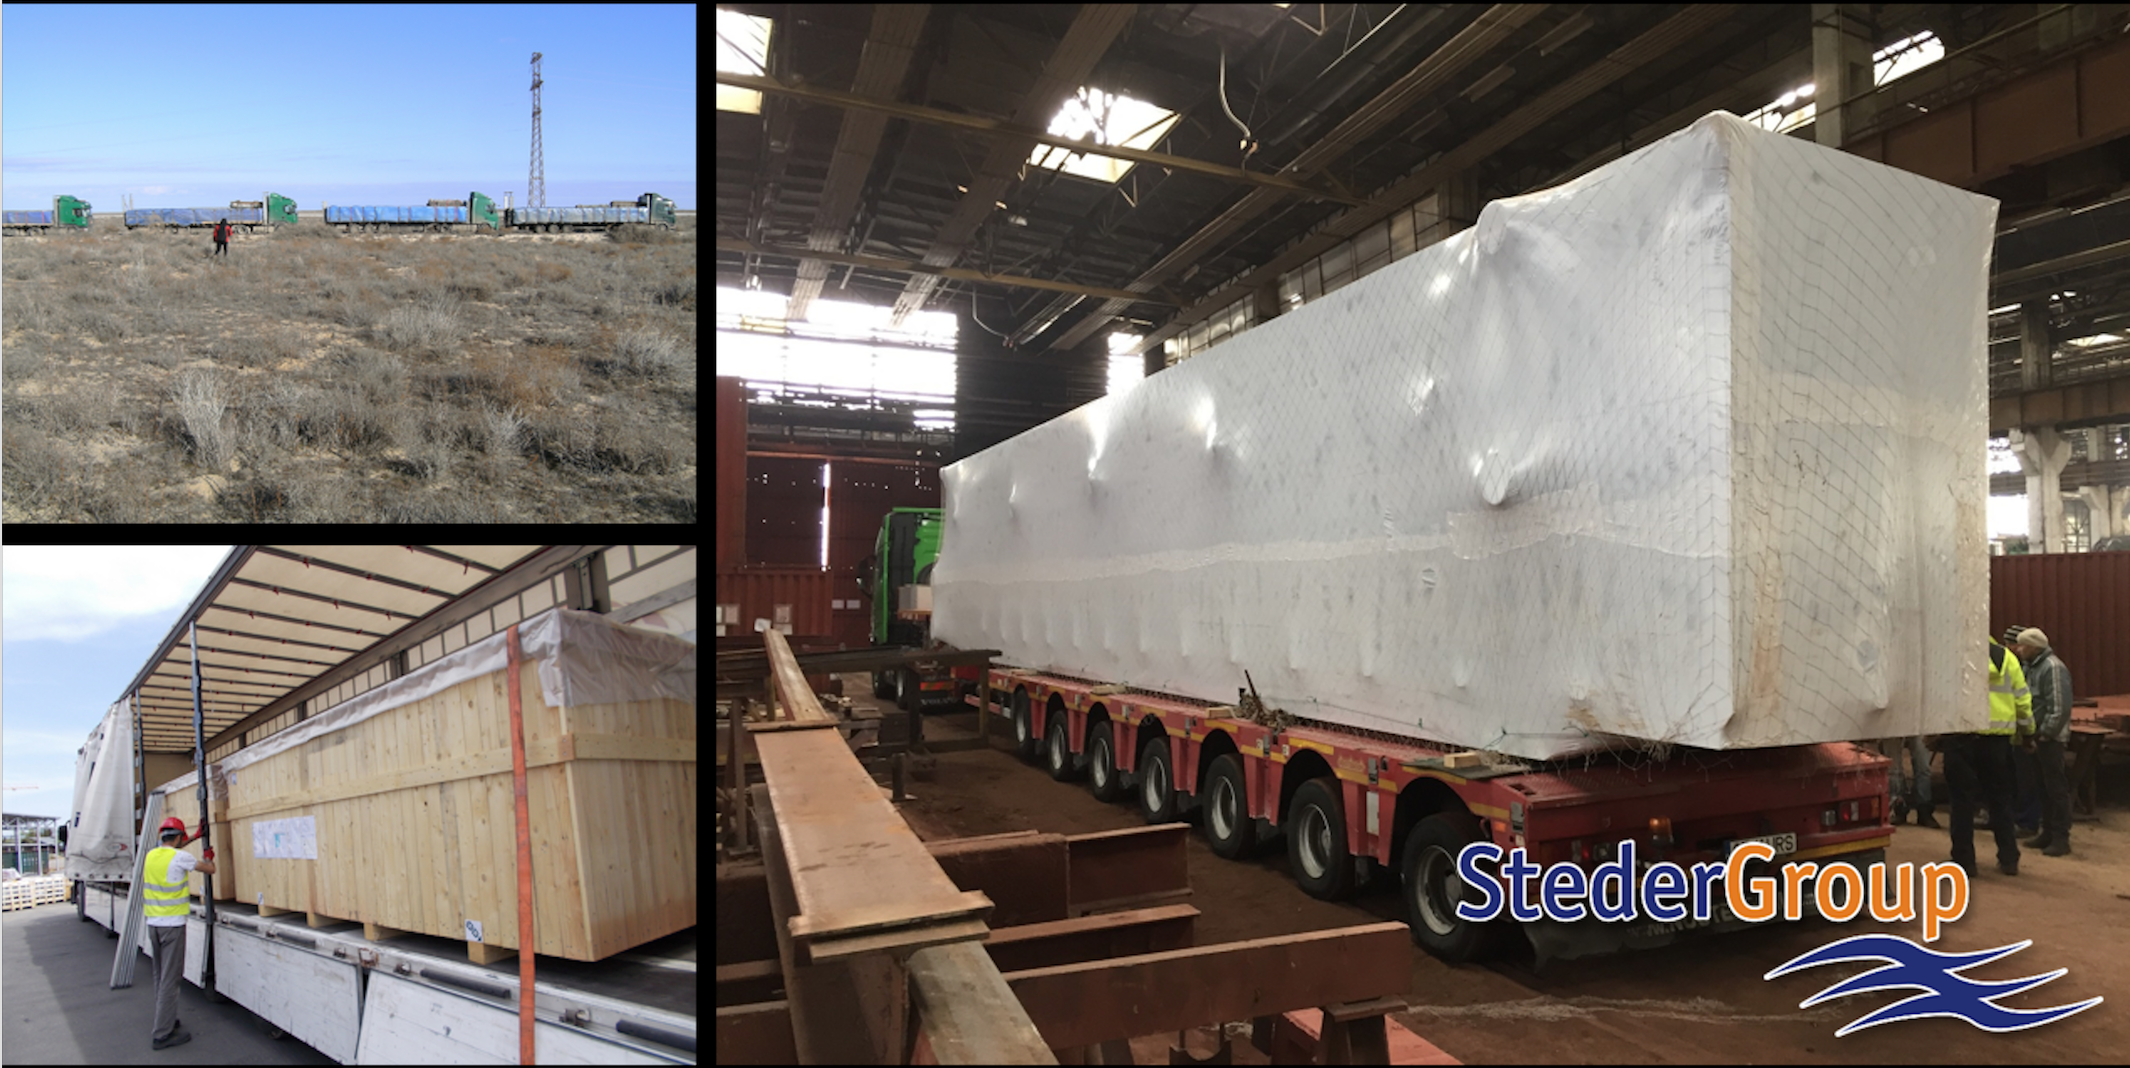 Steder Group transported drilling equipment from Romania to Turkmenistan